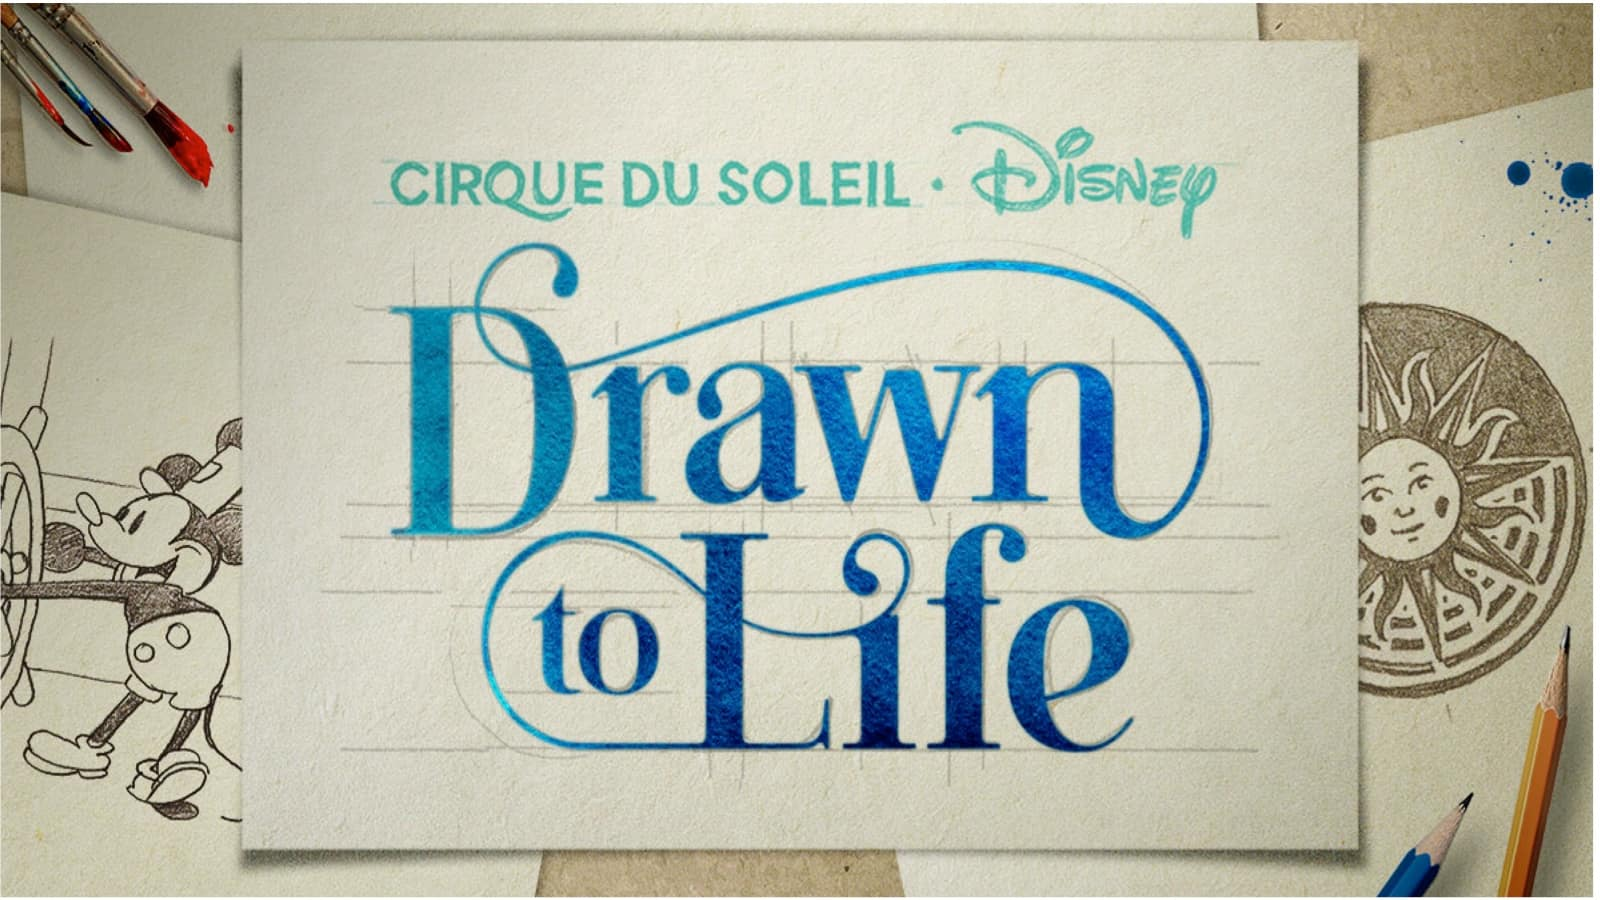 Drawn to Life by Disney & Cirque du Soleil